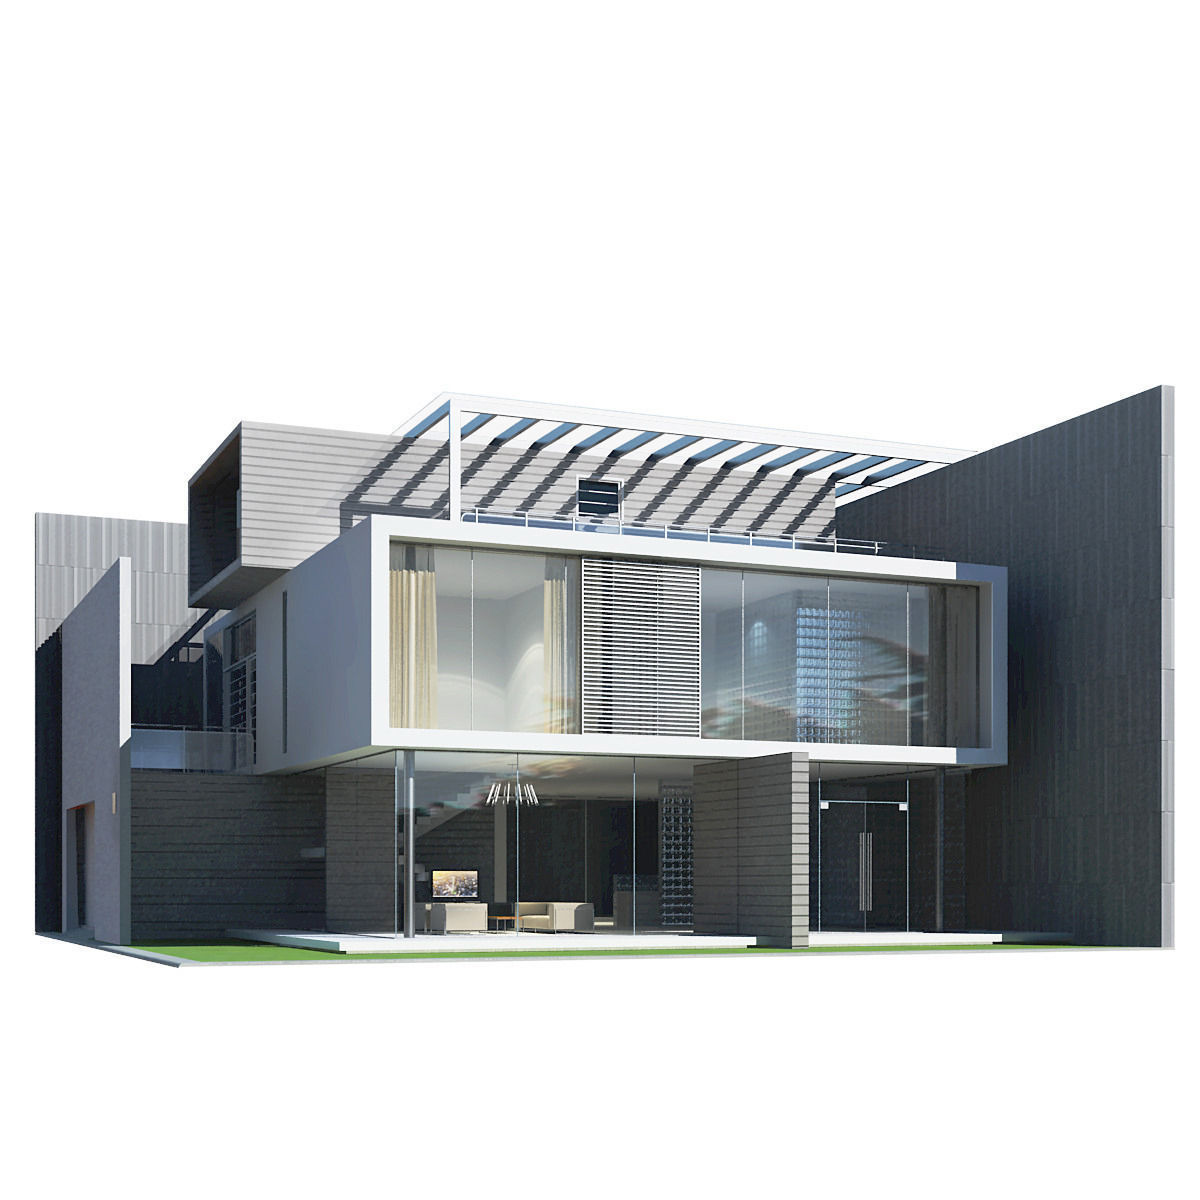 Modern house 3d model max obj 3ds fbx for Build house online 3d free